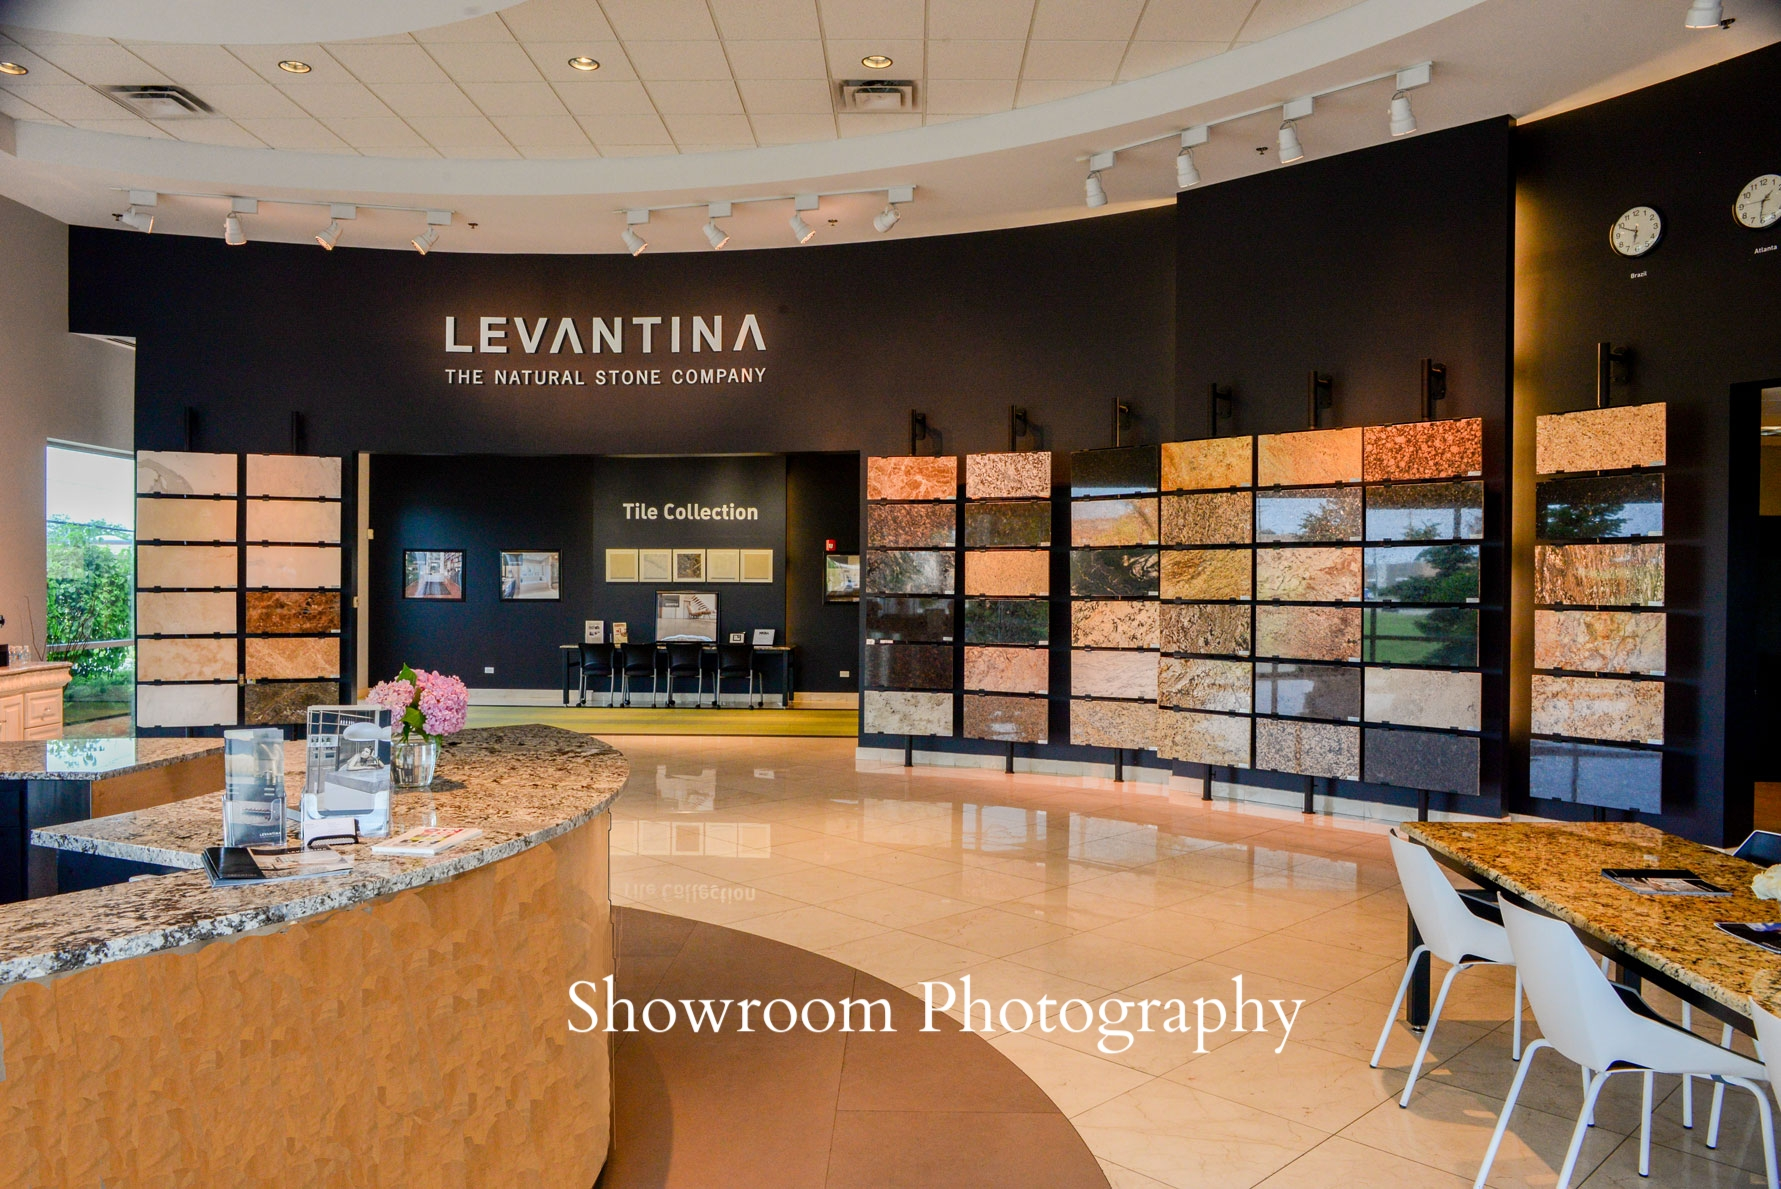 Levantina-Showroom-web.jpg